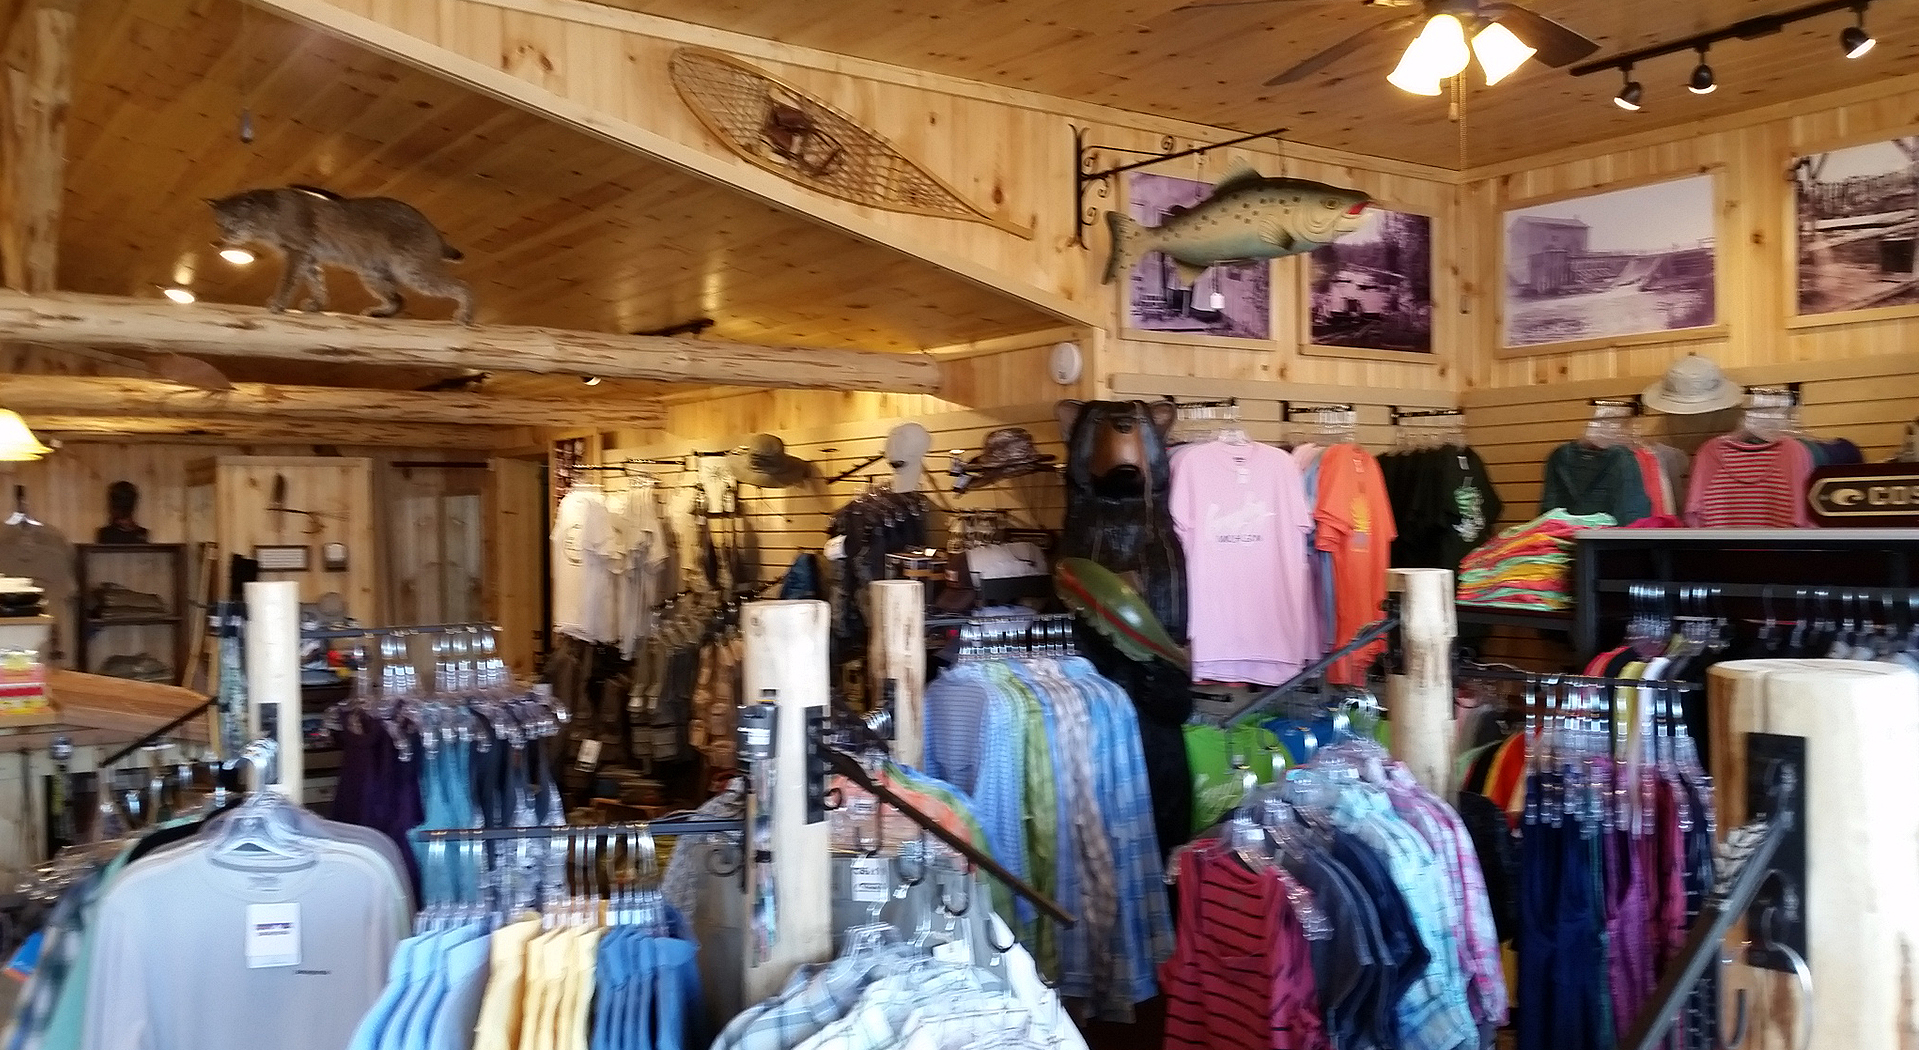 Ron's Fly Shop Interior